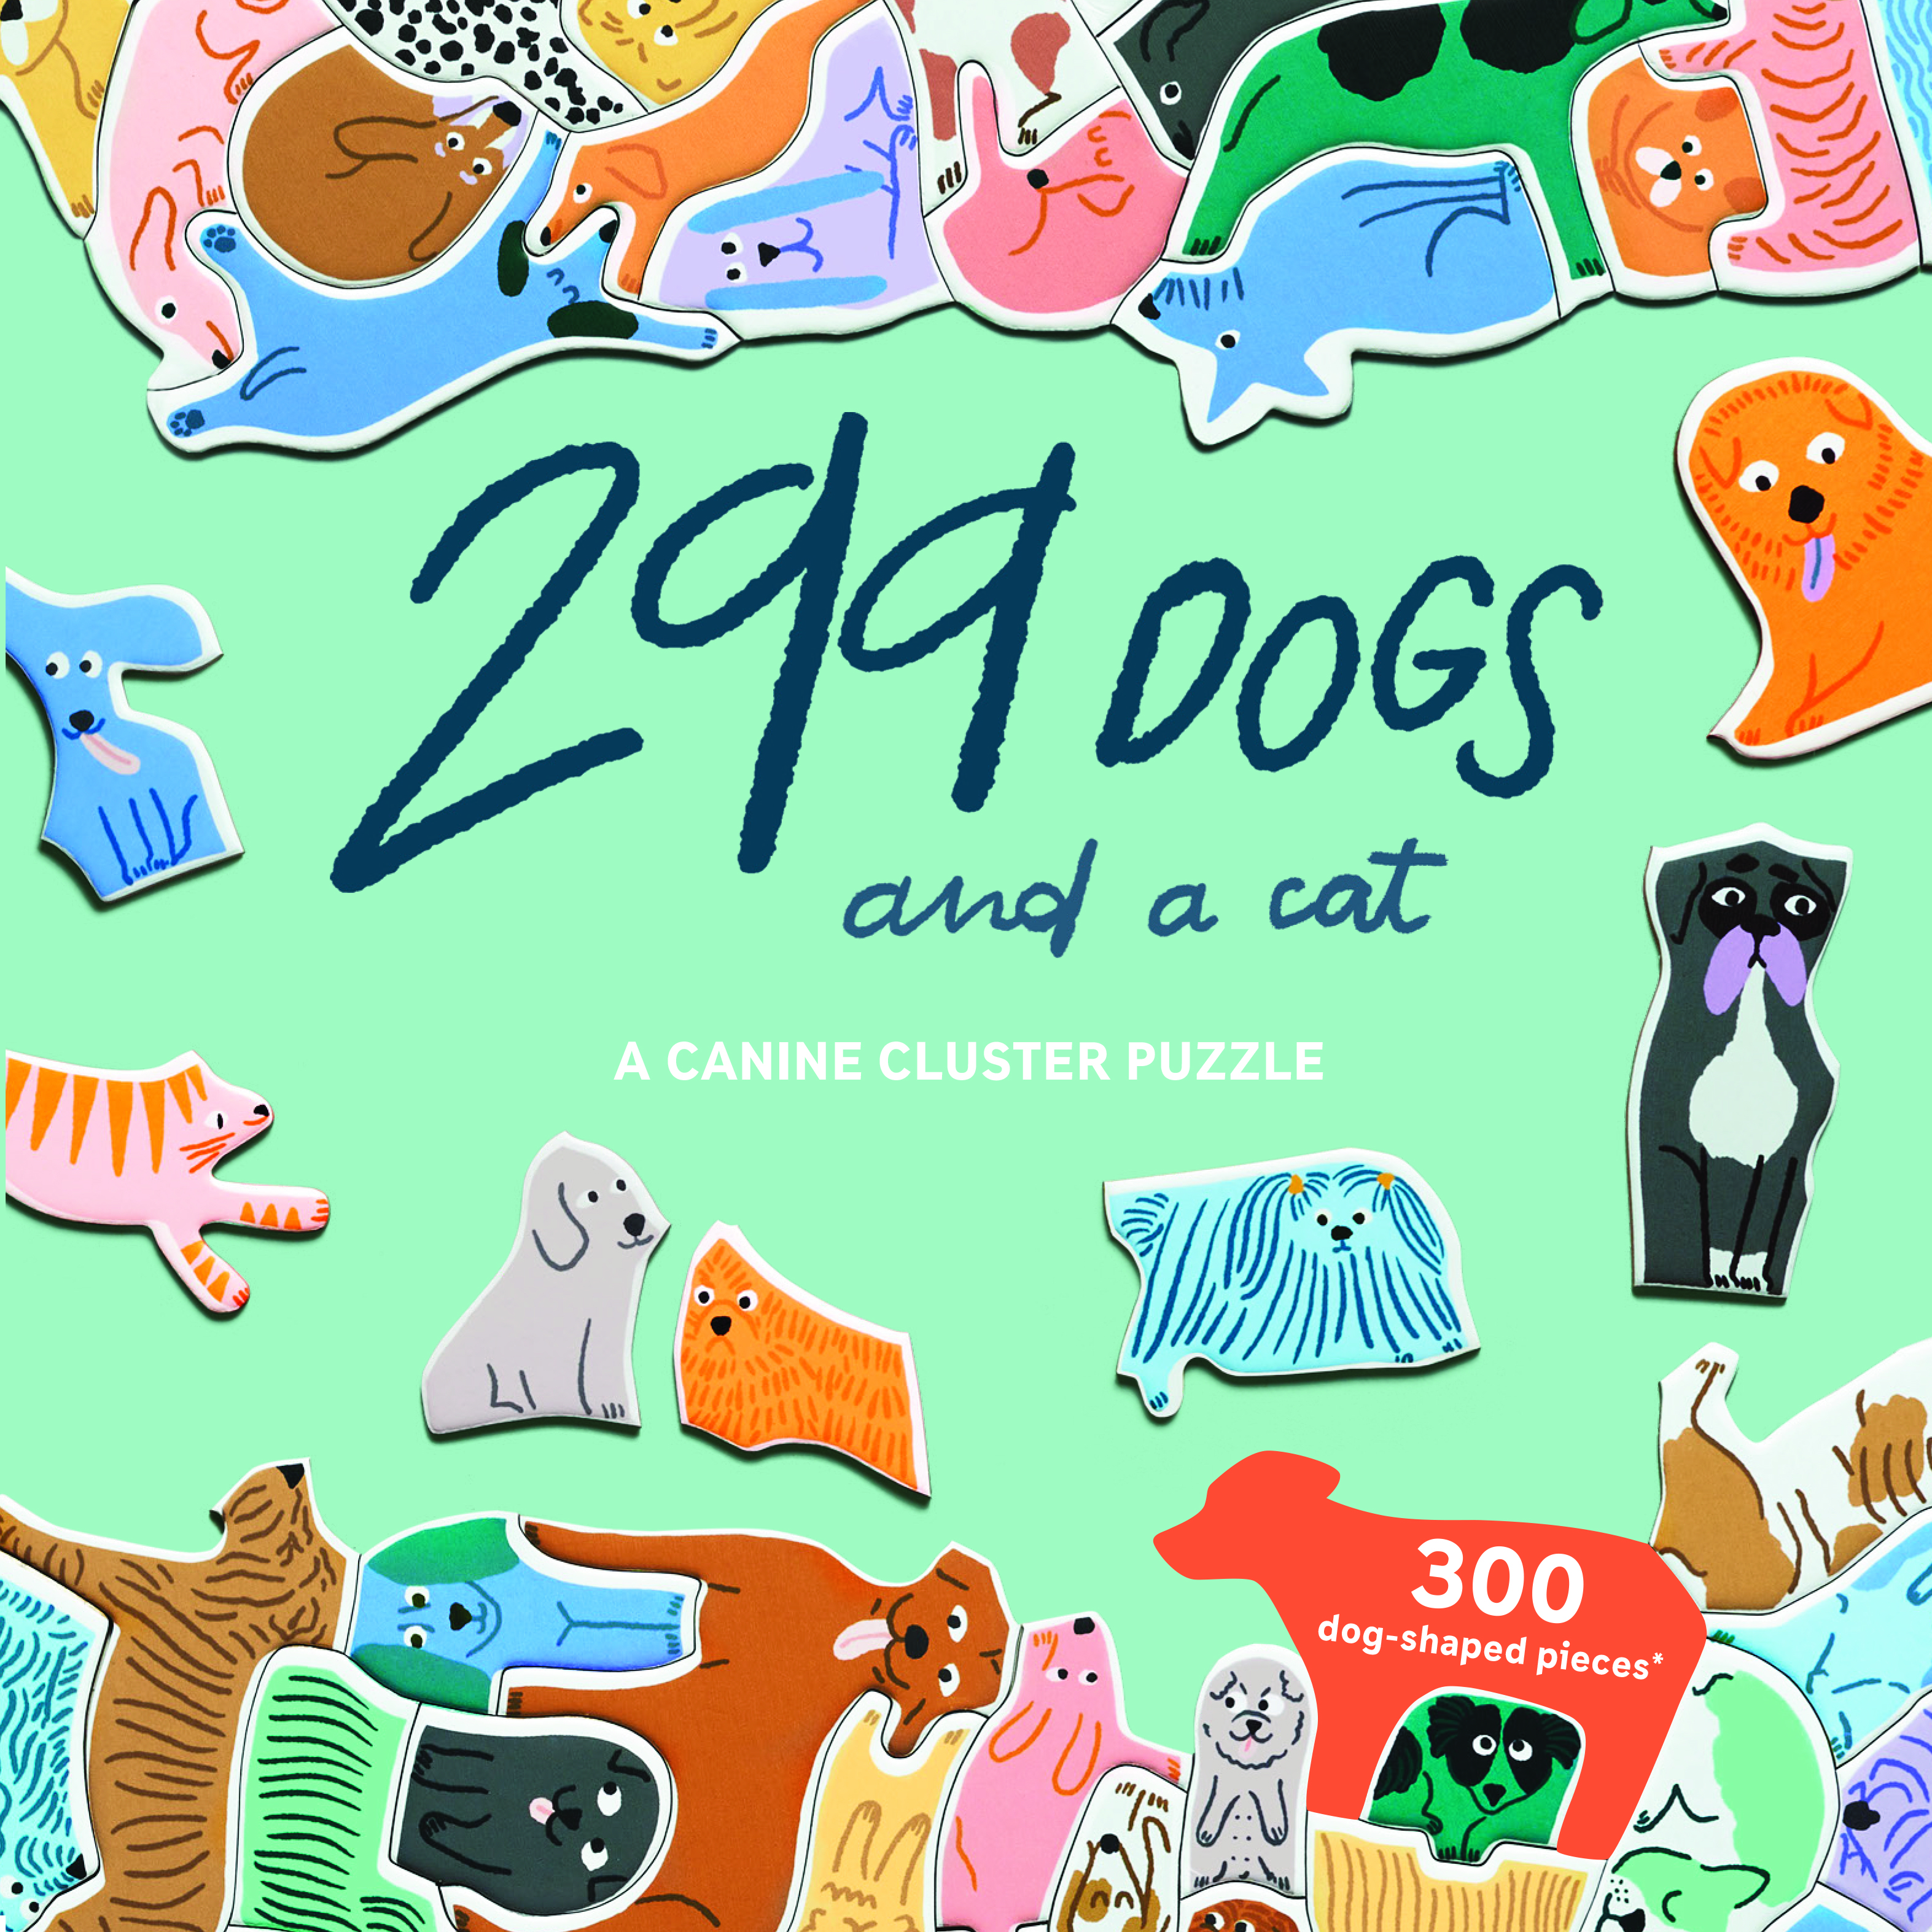 299 Dogs (and a Cat) Cats Jigsaw Puzzle